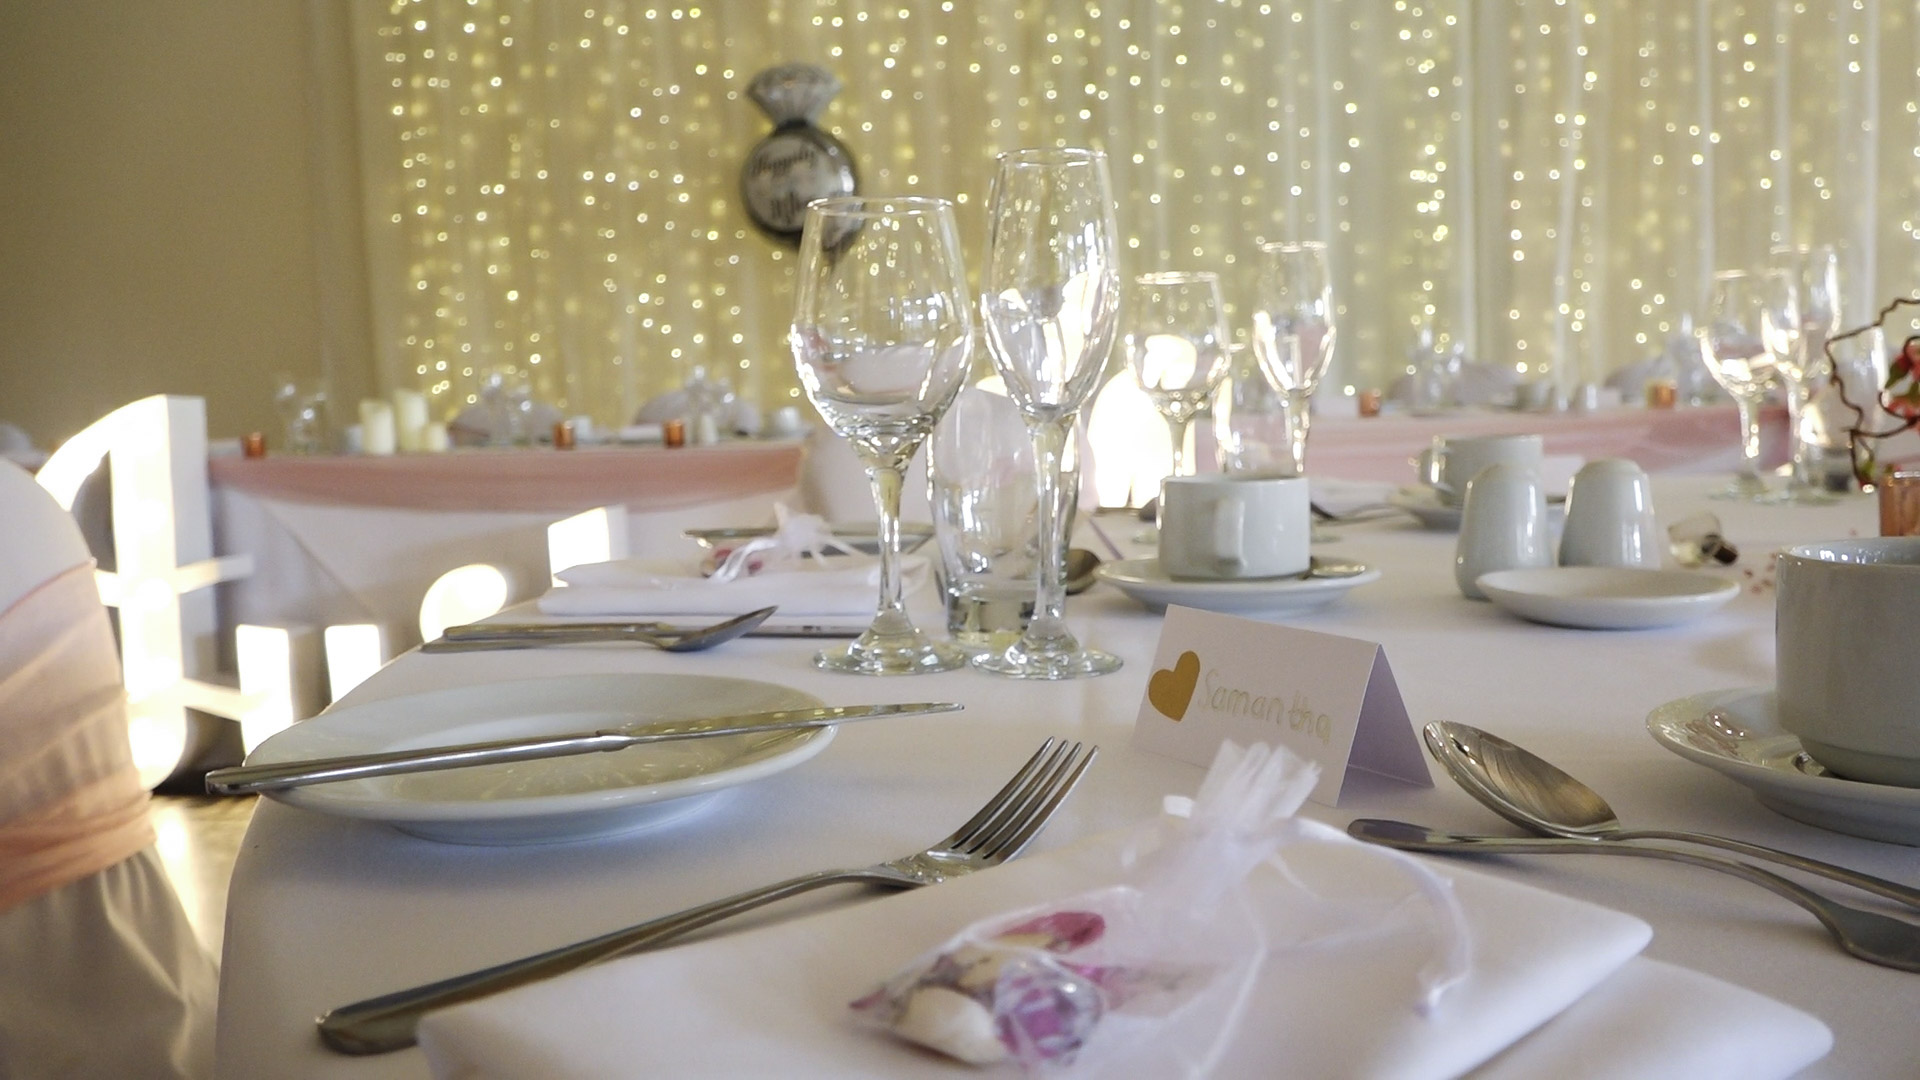 Beamish Hall wedding decor - tables set with soft blush and dinnerware. A blanket of fairy lights can be seen in the background